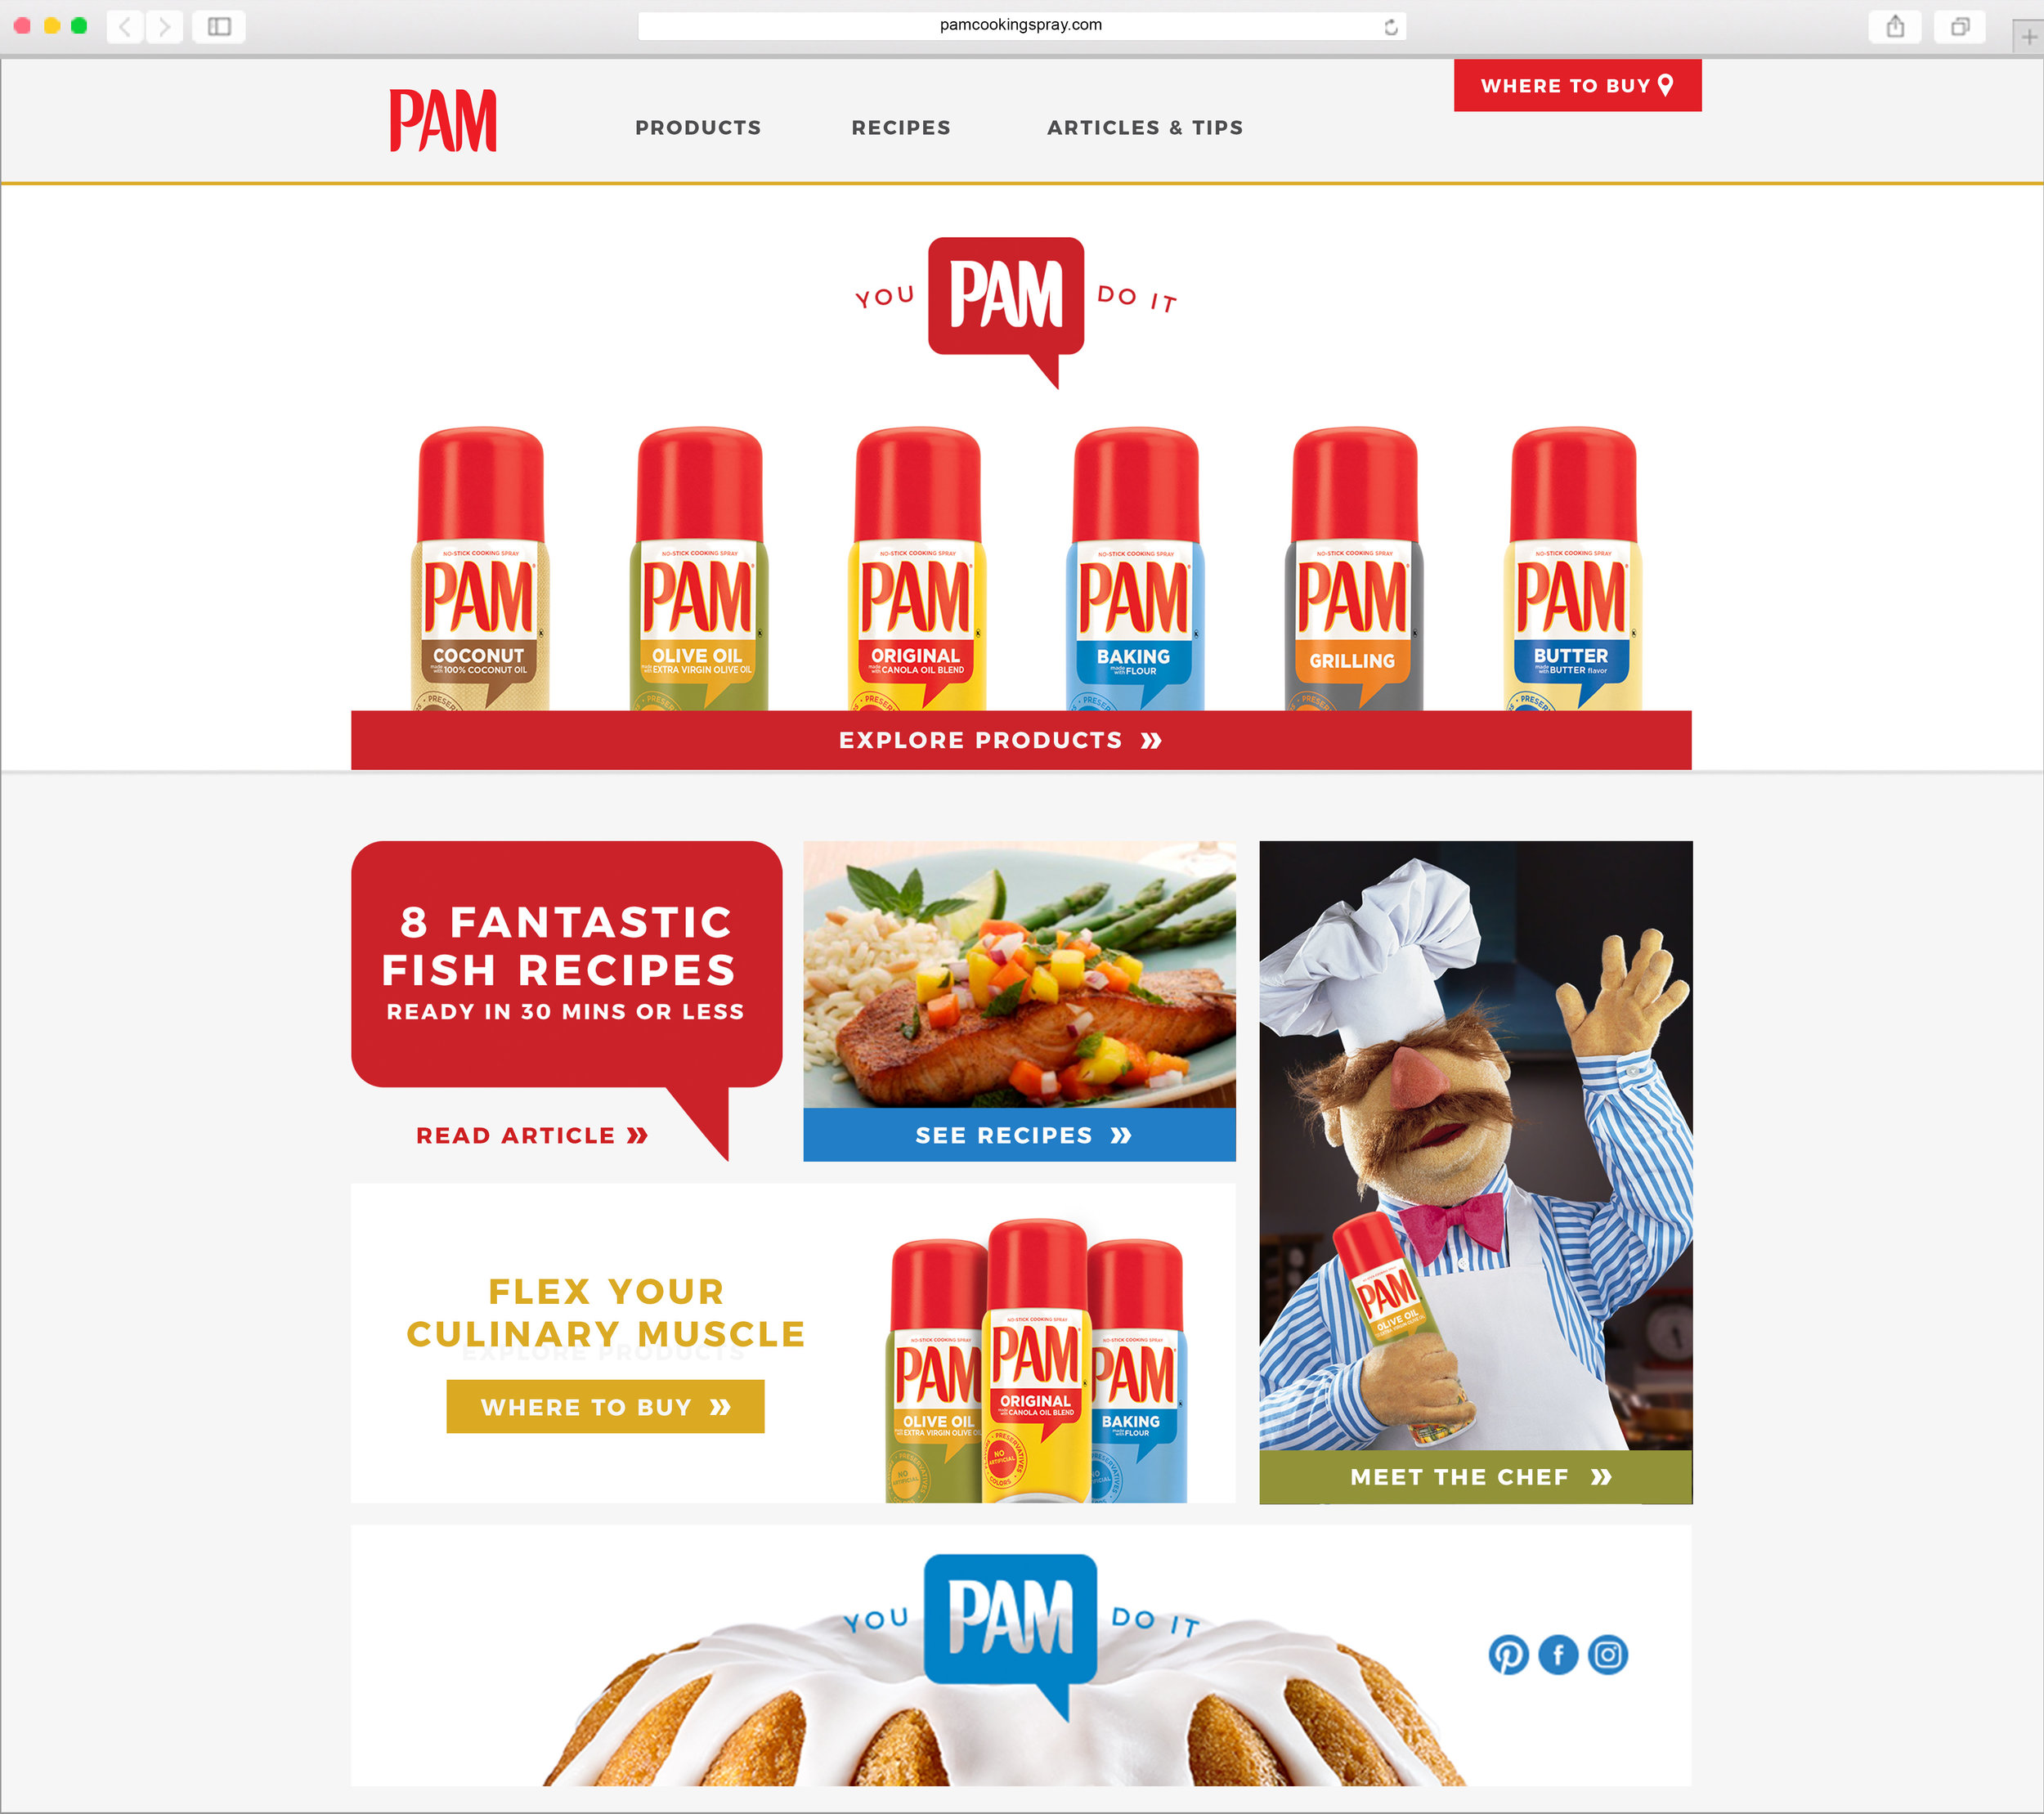 PAM_Website_Layout_Homepage_LB_V6.jpg